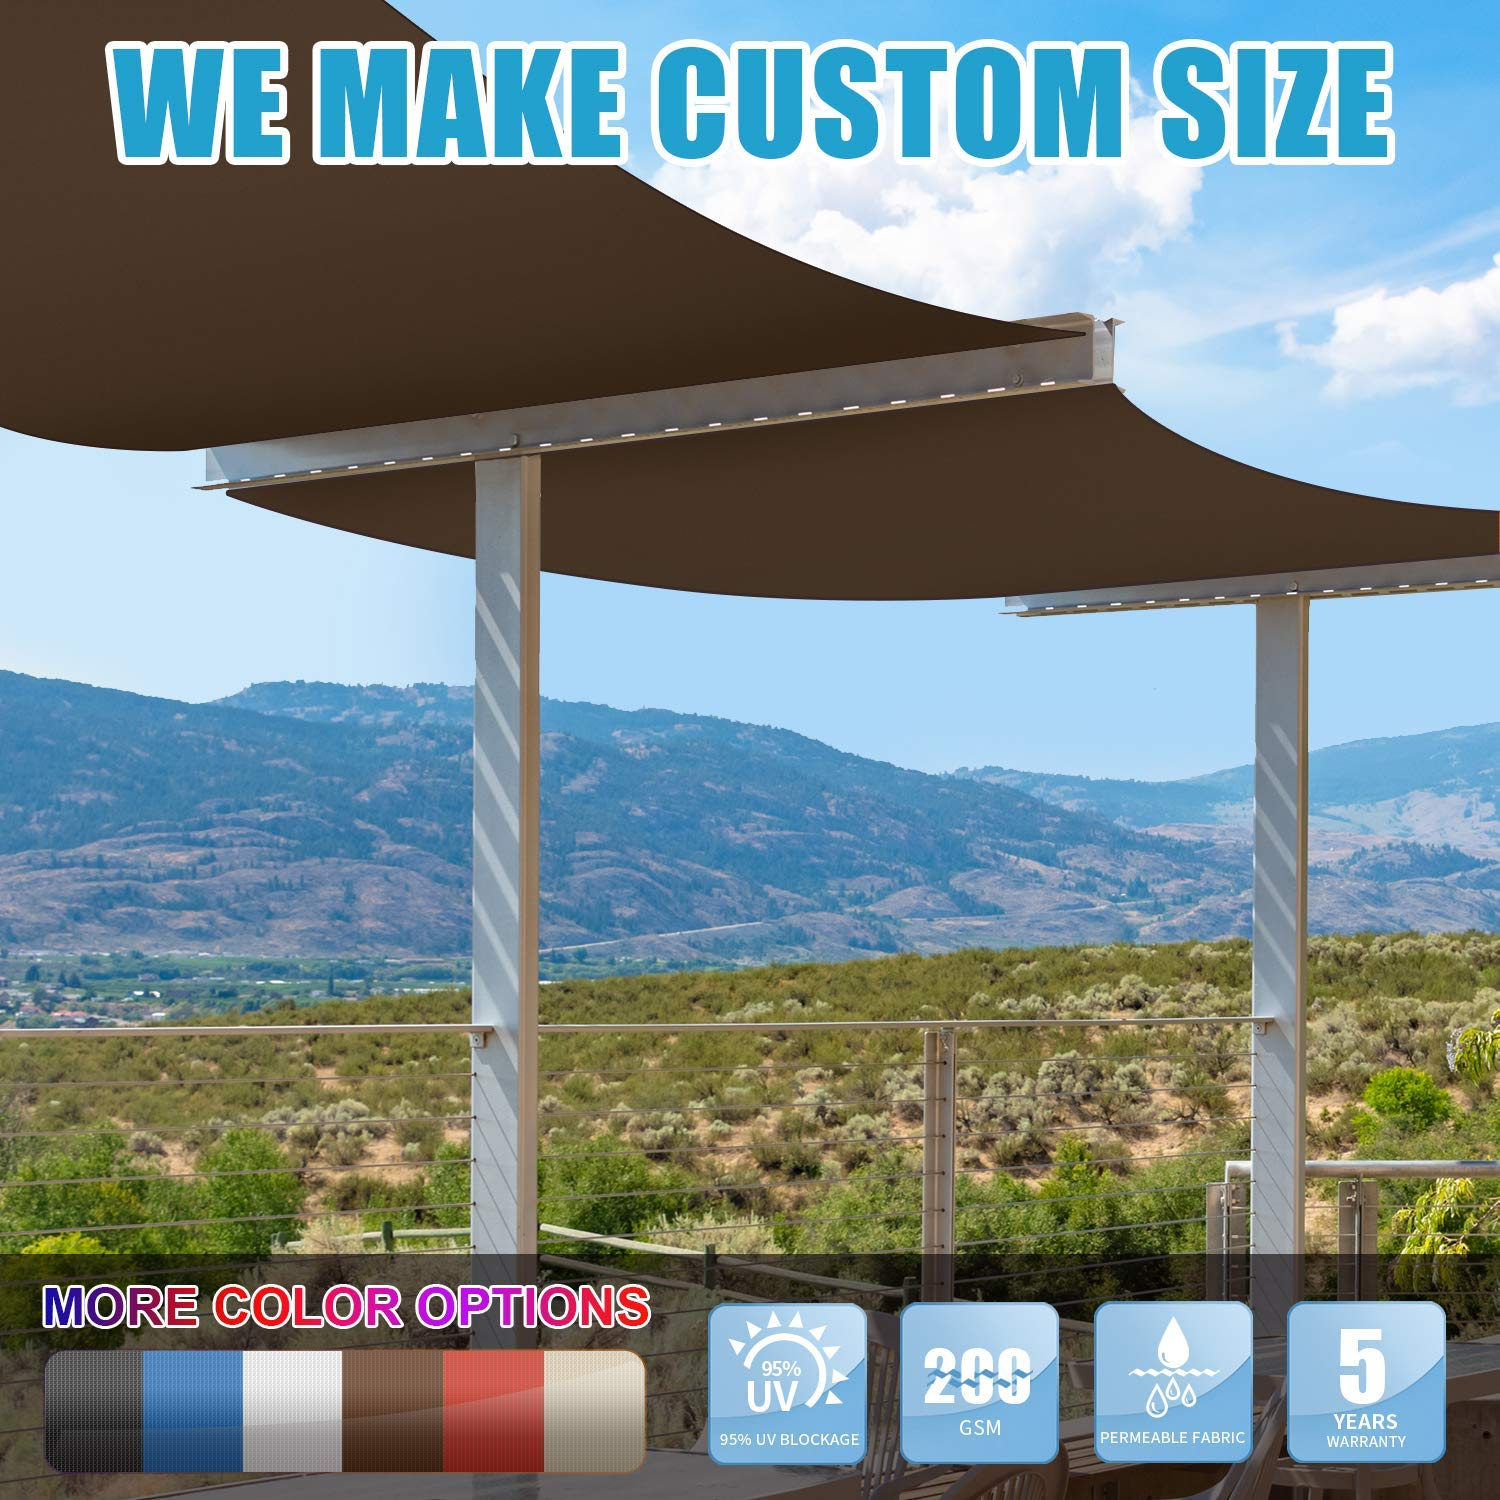 Amgo Custom Size 12 x 16 Brown Rectangle Sun Shade Sail Canopy Awning, 95 UV Blockage, Water Air Permeable, Commercial and Residential, 5 Years Warranty Available for Custom Sizes